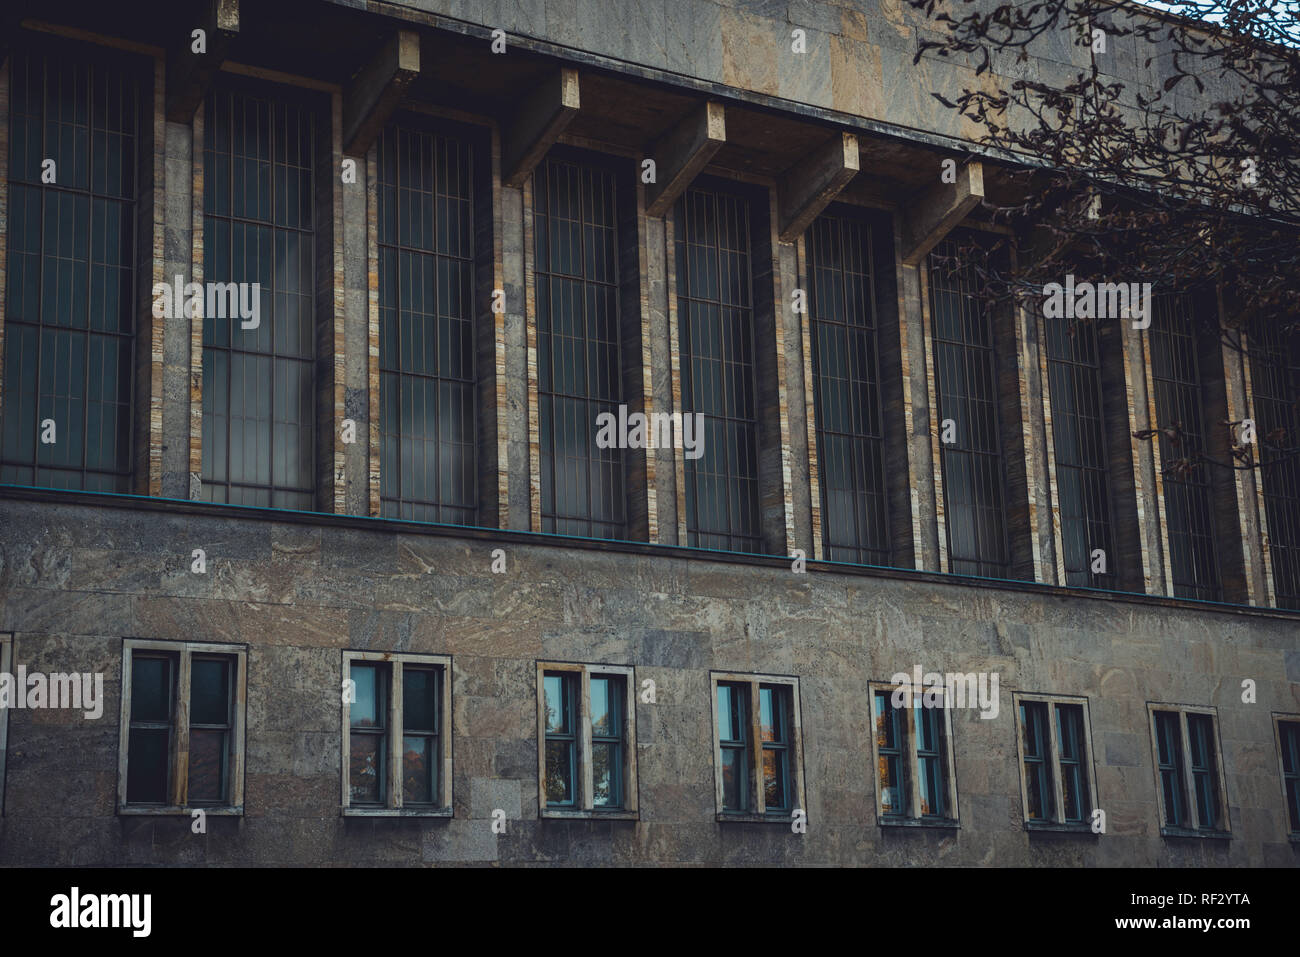 Berlin, Germany November 12, 2018: Architectural details of the historic Tempelhof Airport in Berlin, Germany. - Stock Image